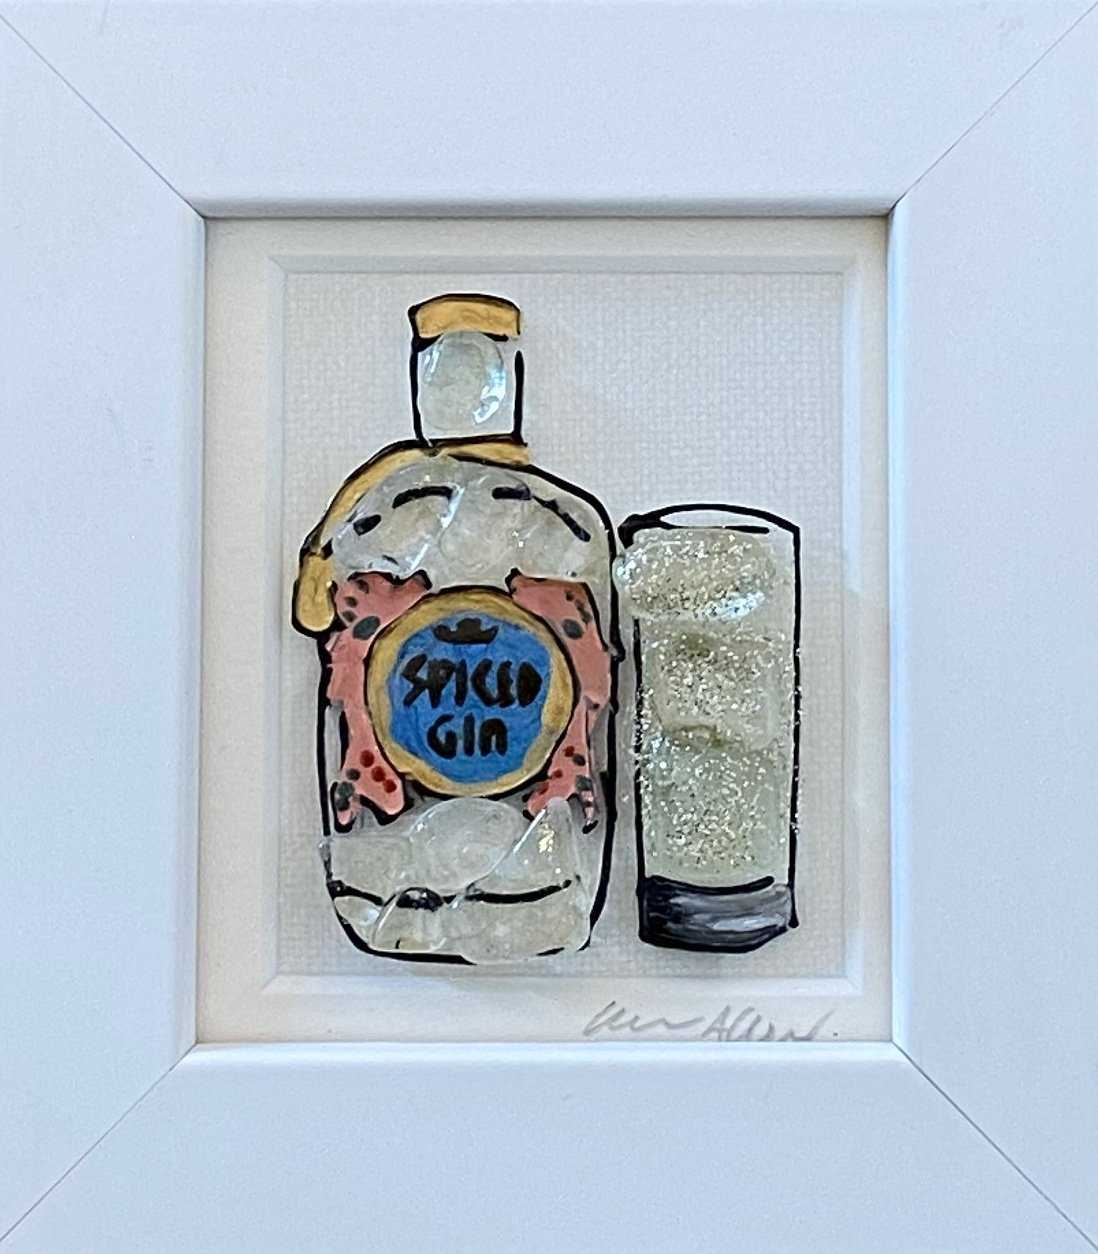 Small Spiced Gin Art Title - Online Art Shop Brighton, UK